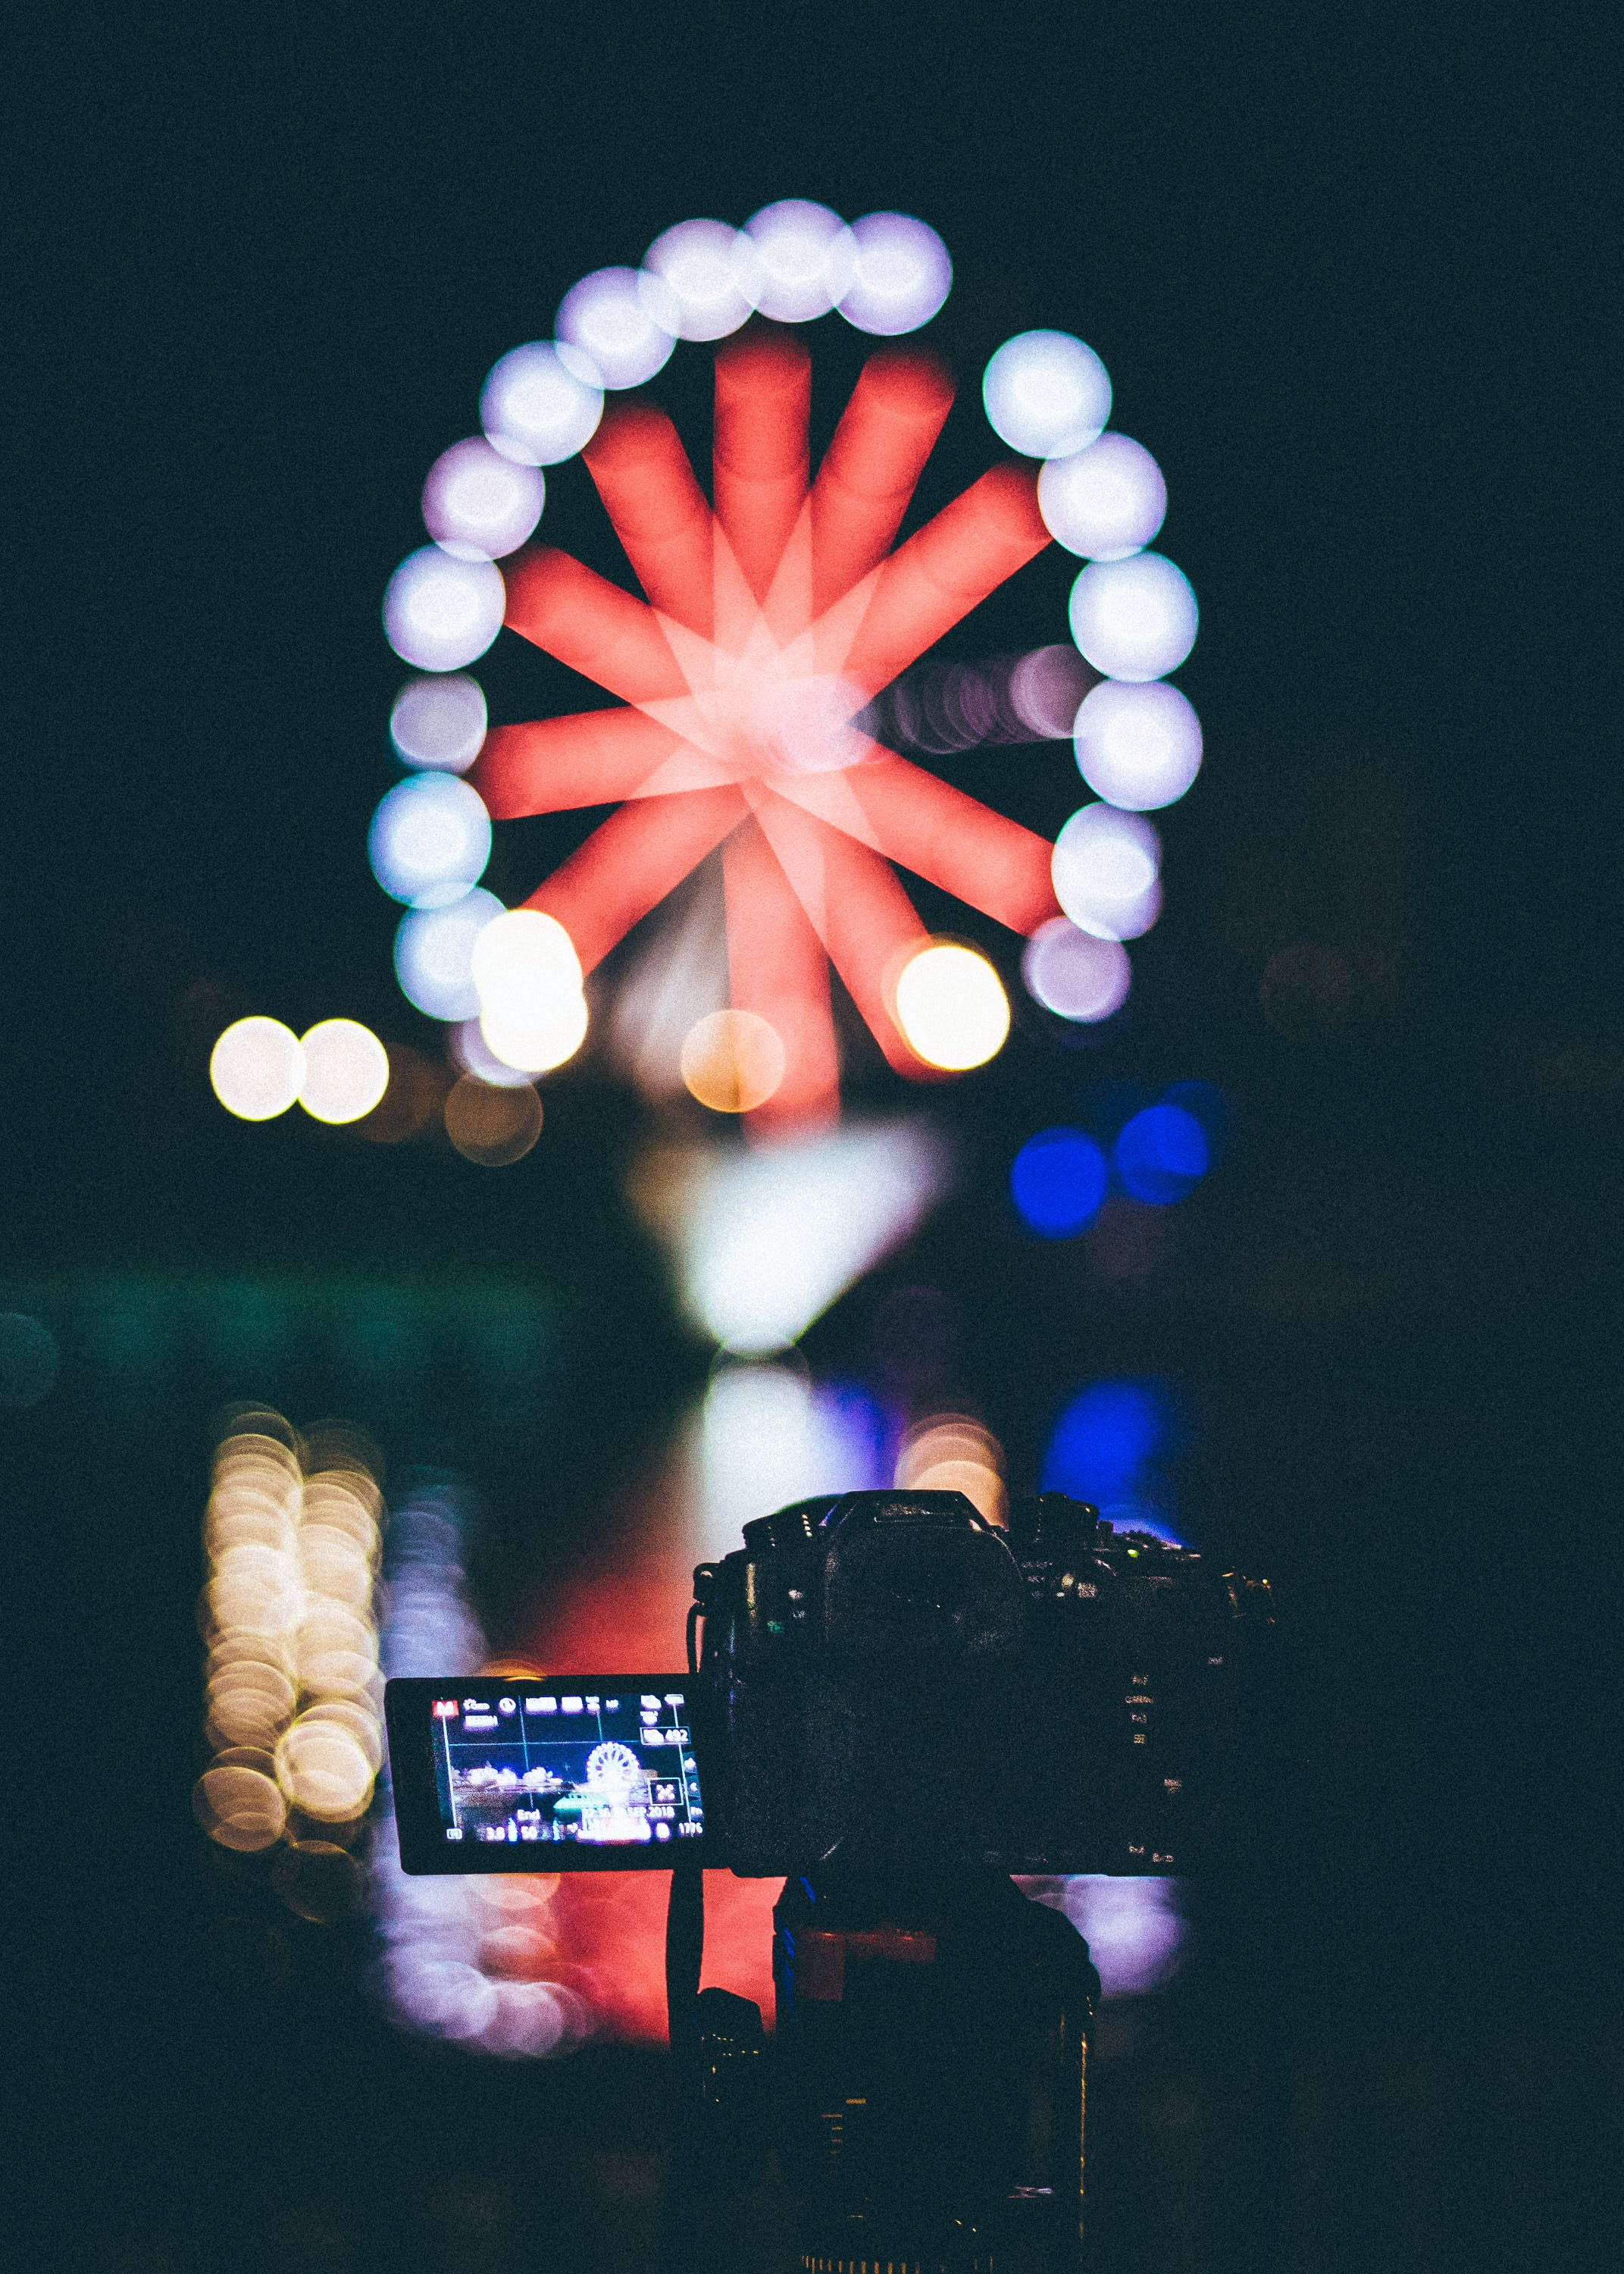 Selective Focus Photography of Dslr Camera With Ferris Wheel Bokeh Lights